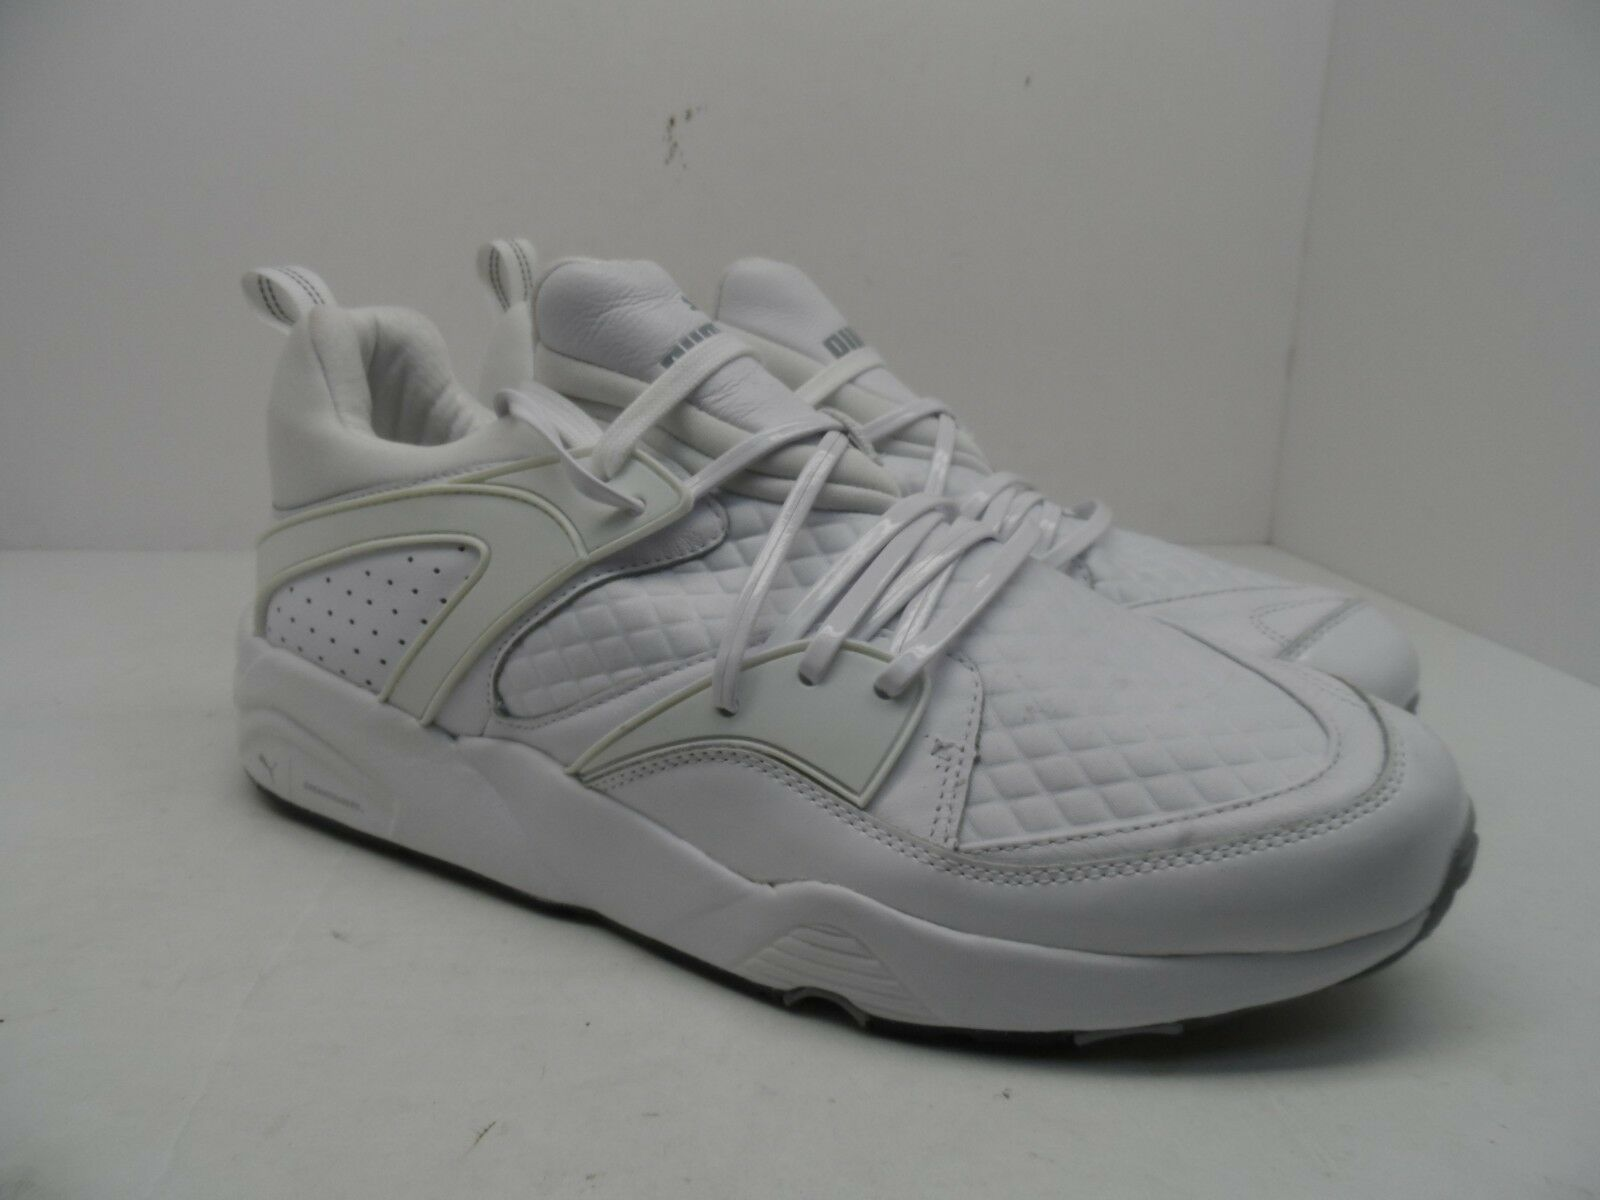 16e47e8b2ddb PUMA Men s BLAZE OF GLORY X MEEK BIKE LIFE LIFE LIFE 362204 02 Casual Shoe  White SAUCONY Hurricane 16 Men s Blue Running ...